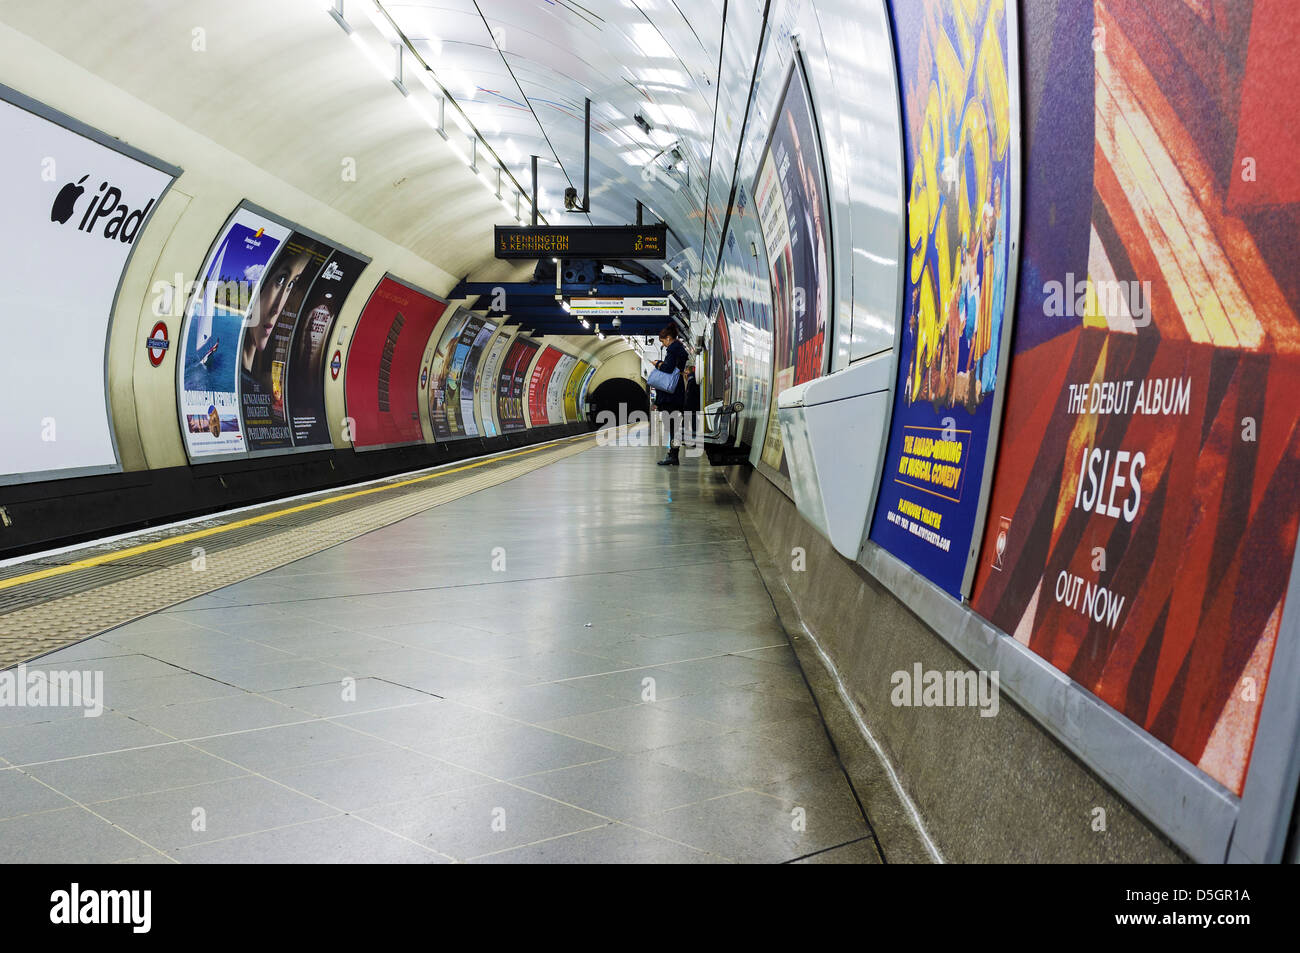 The platform of a London Tube Station - Stock Image